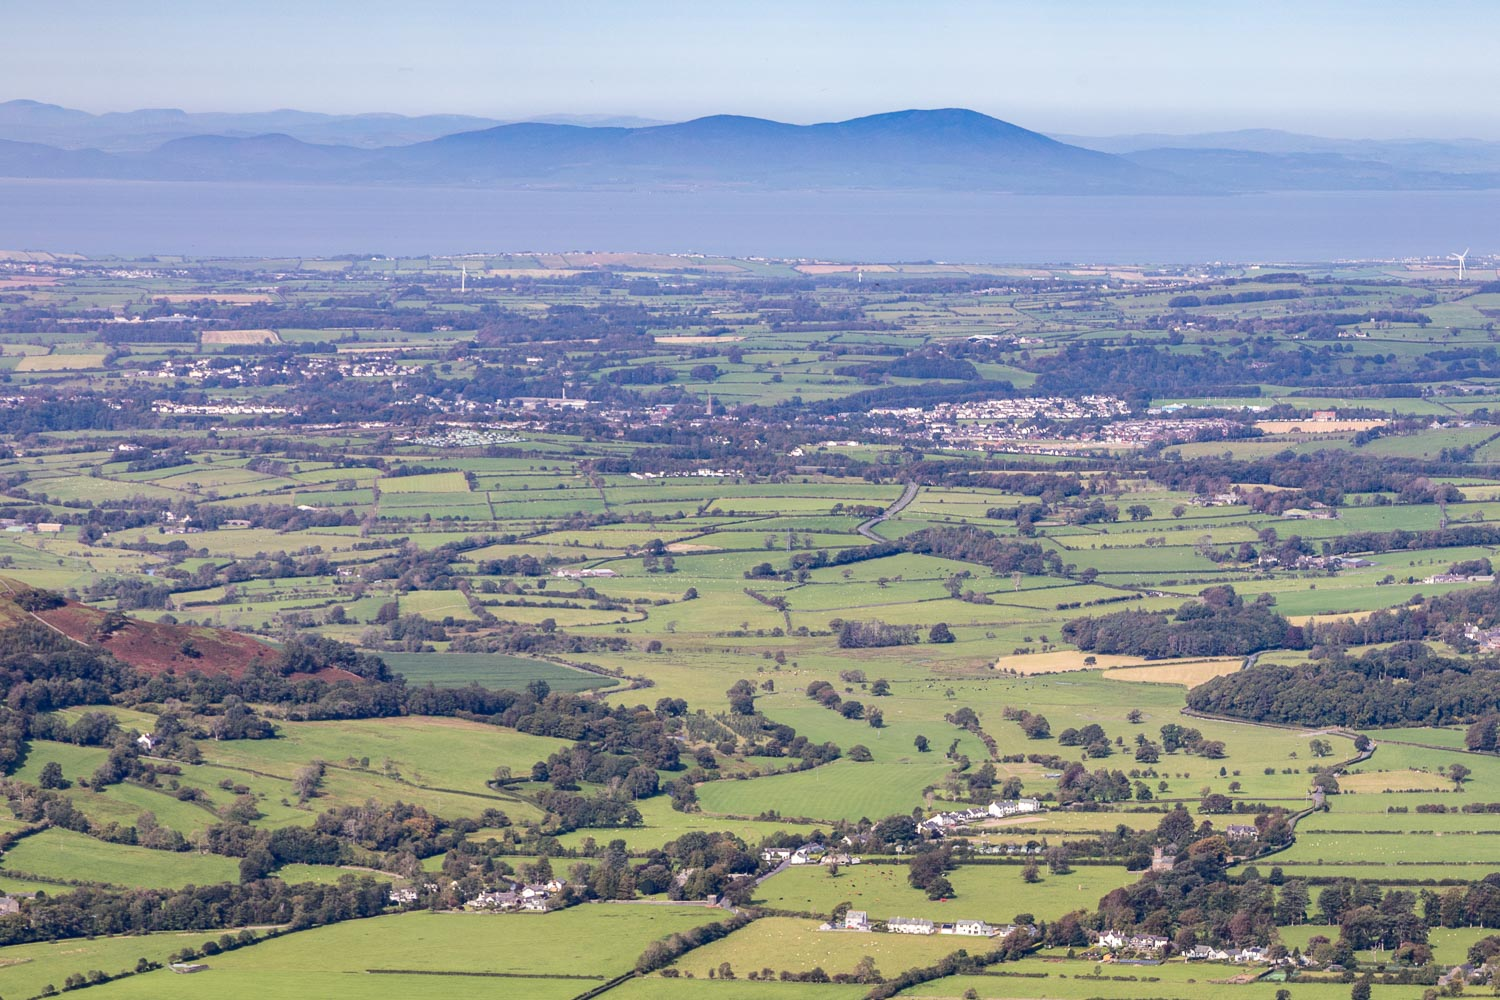 Lorton Vale, Cockermouth, Solway Firth, Criffel